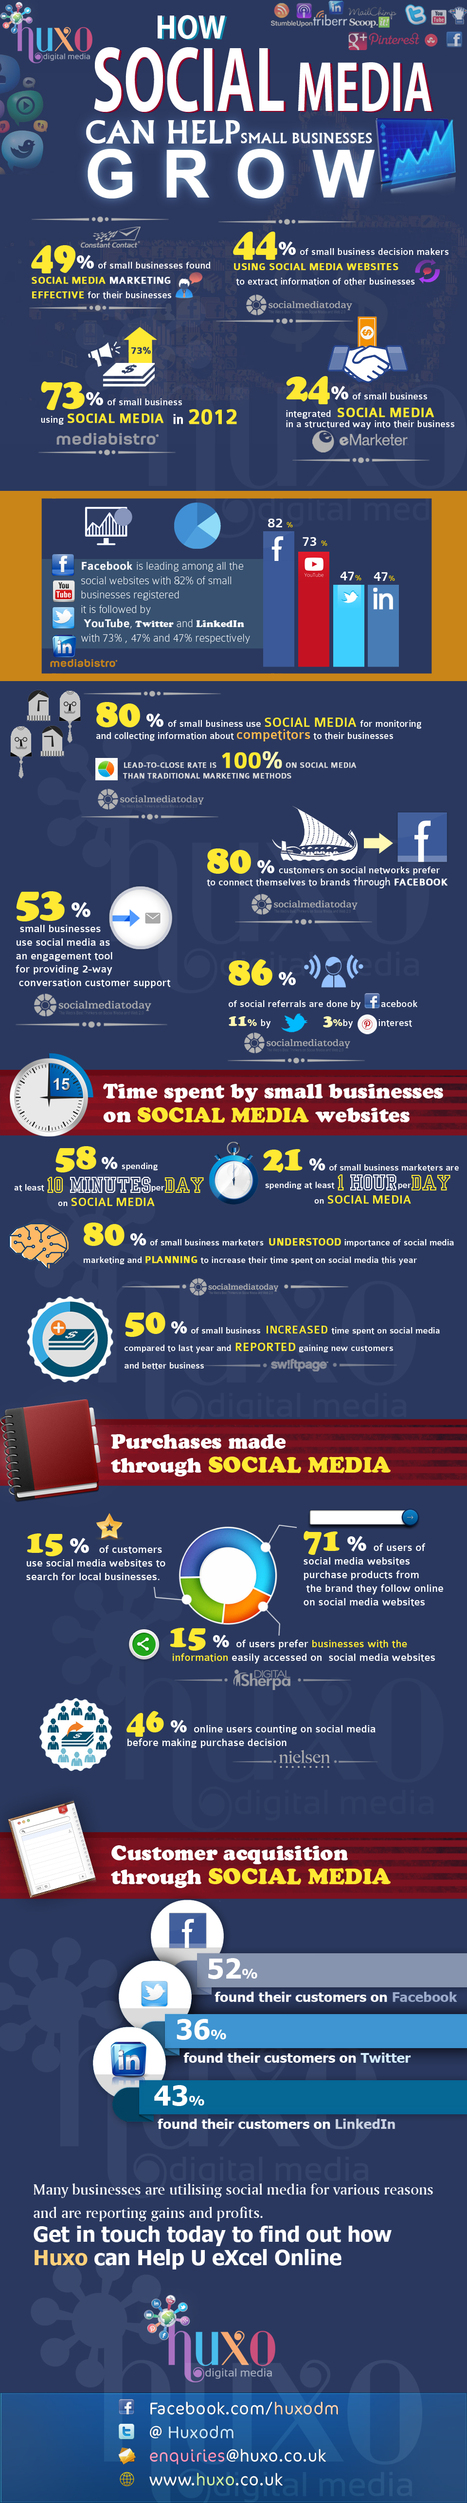 Social Media Statistics for Small Businesses: Infographic | Social Media | Scoop.it